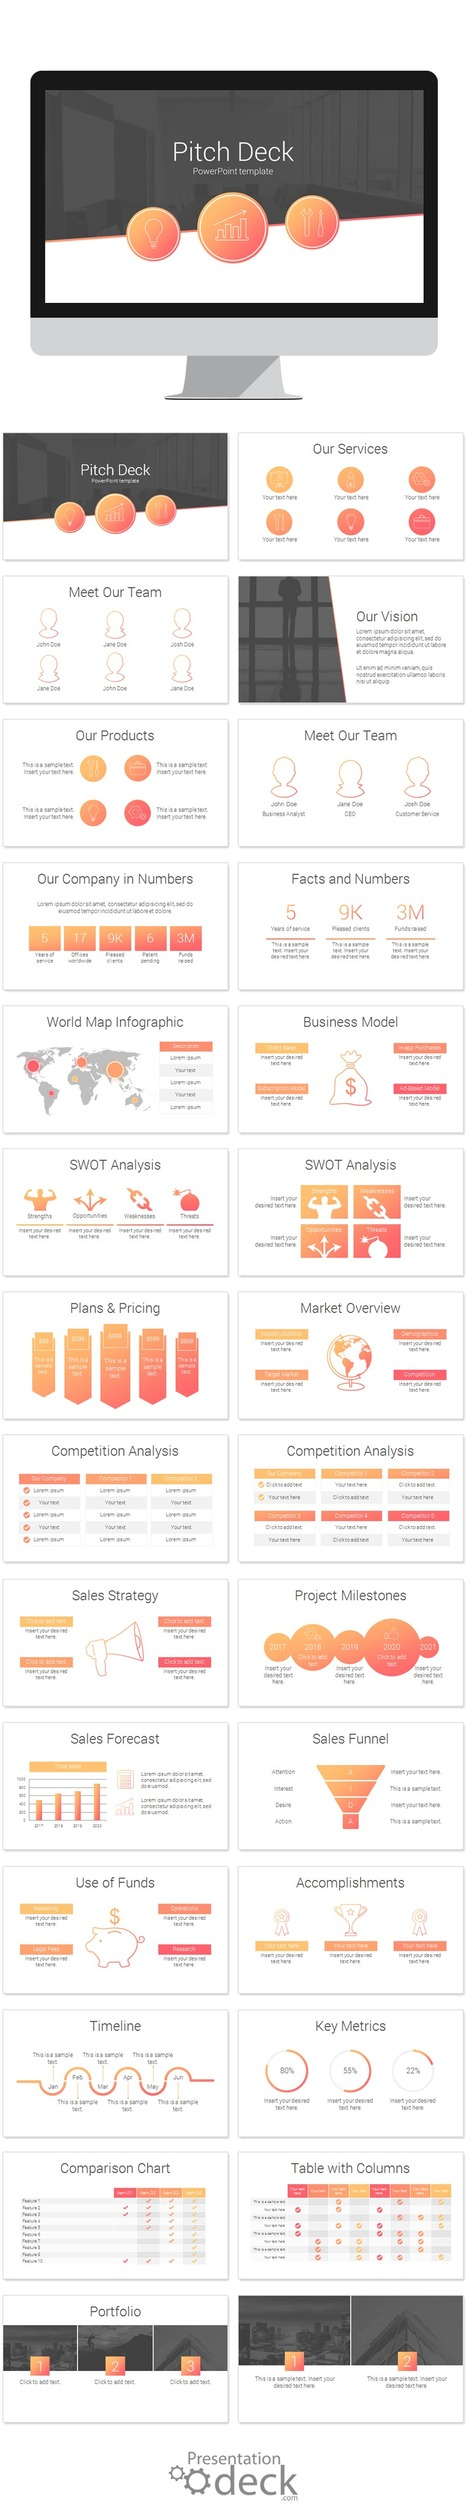 Powerpoint templates scoop pitch deck powerpoint template alramifo Images